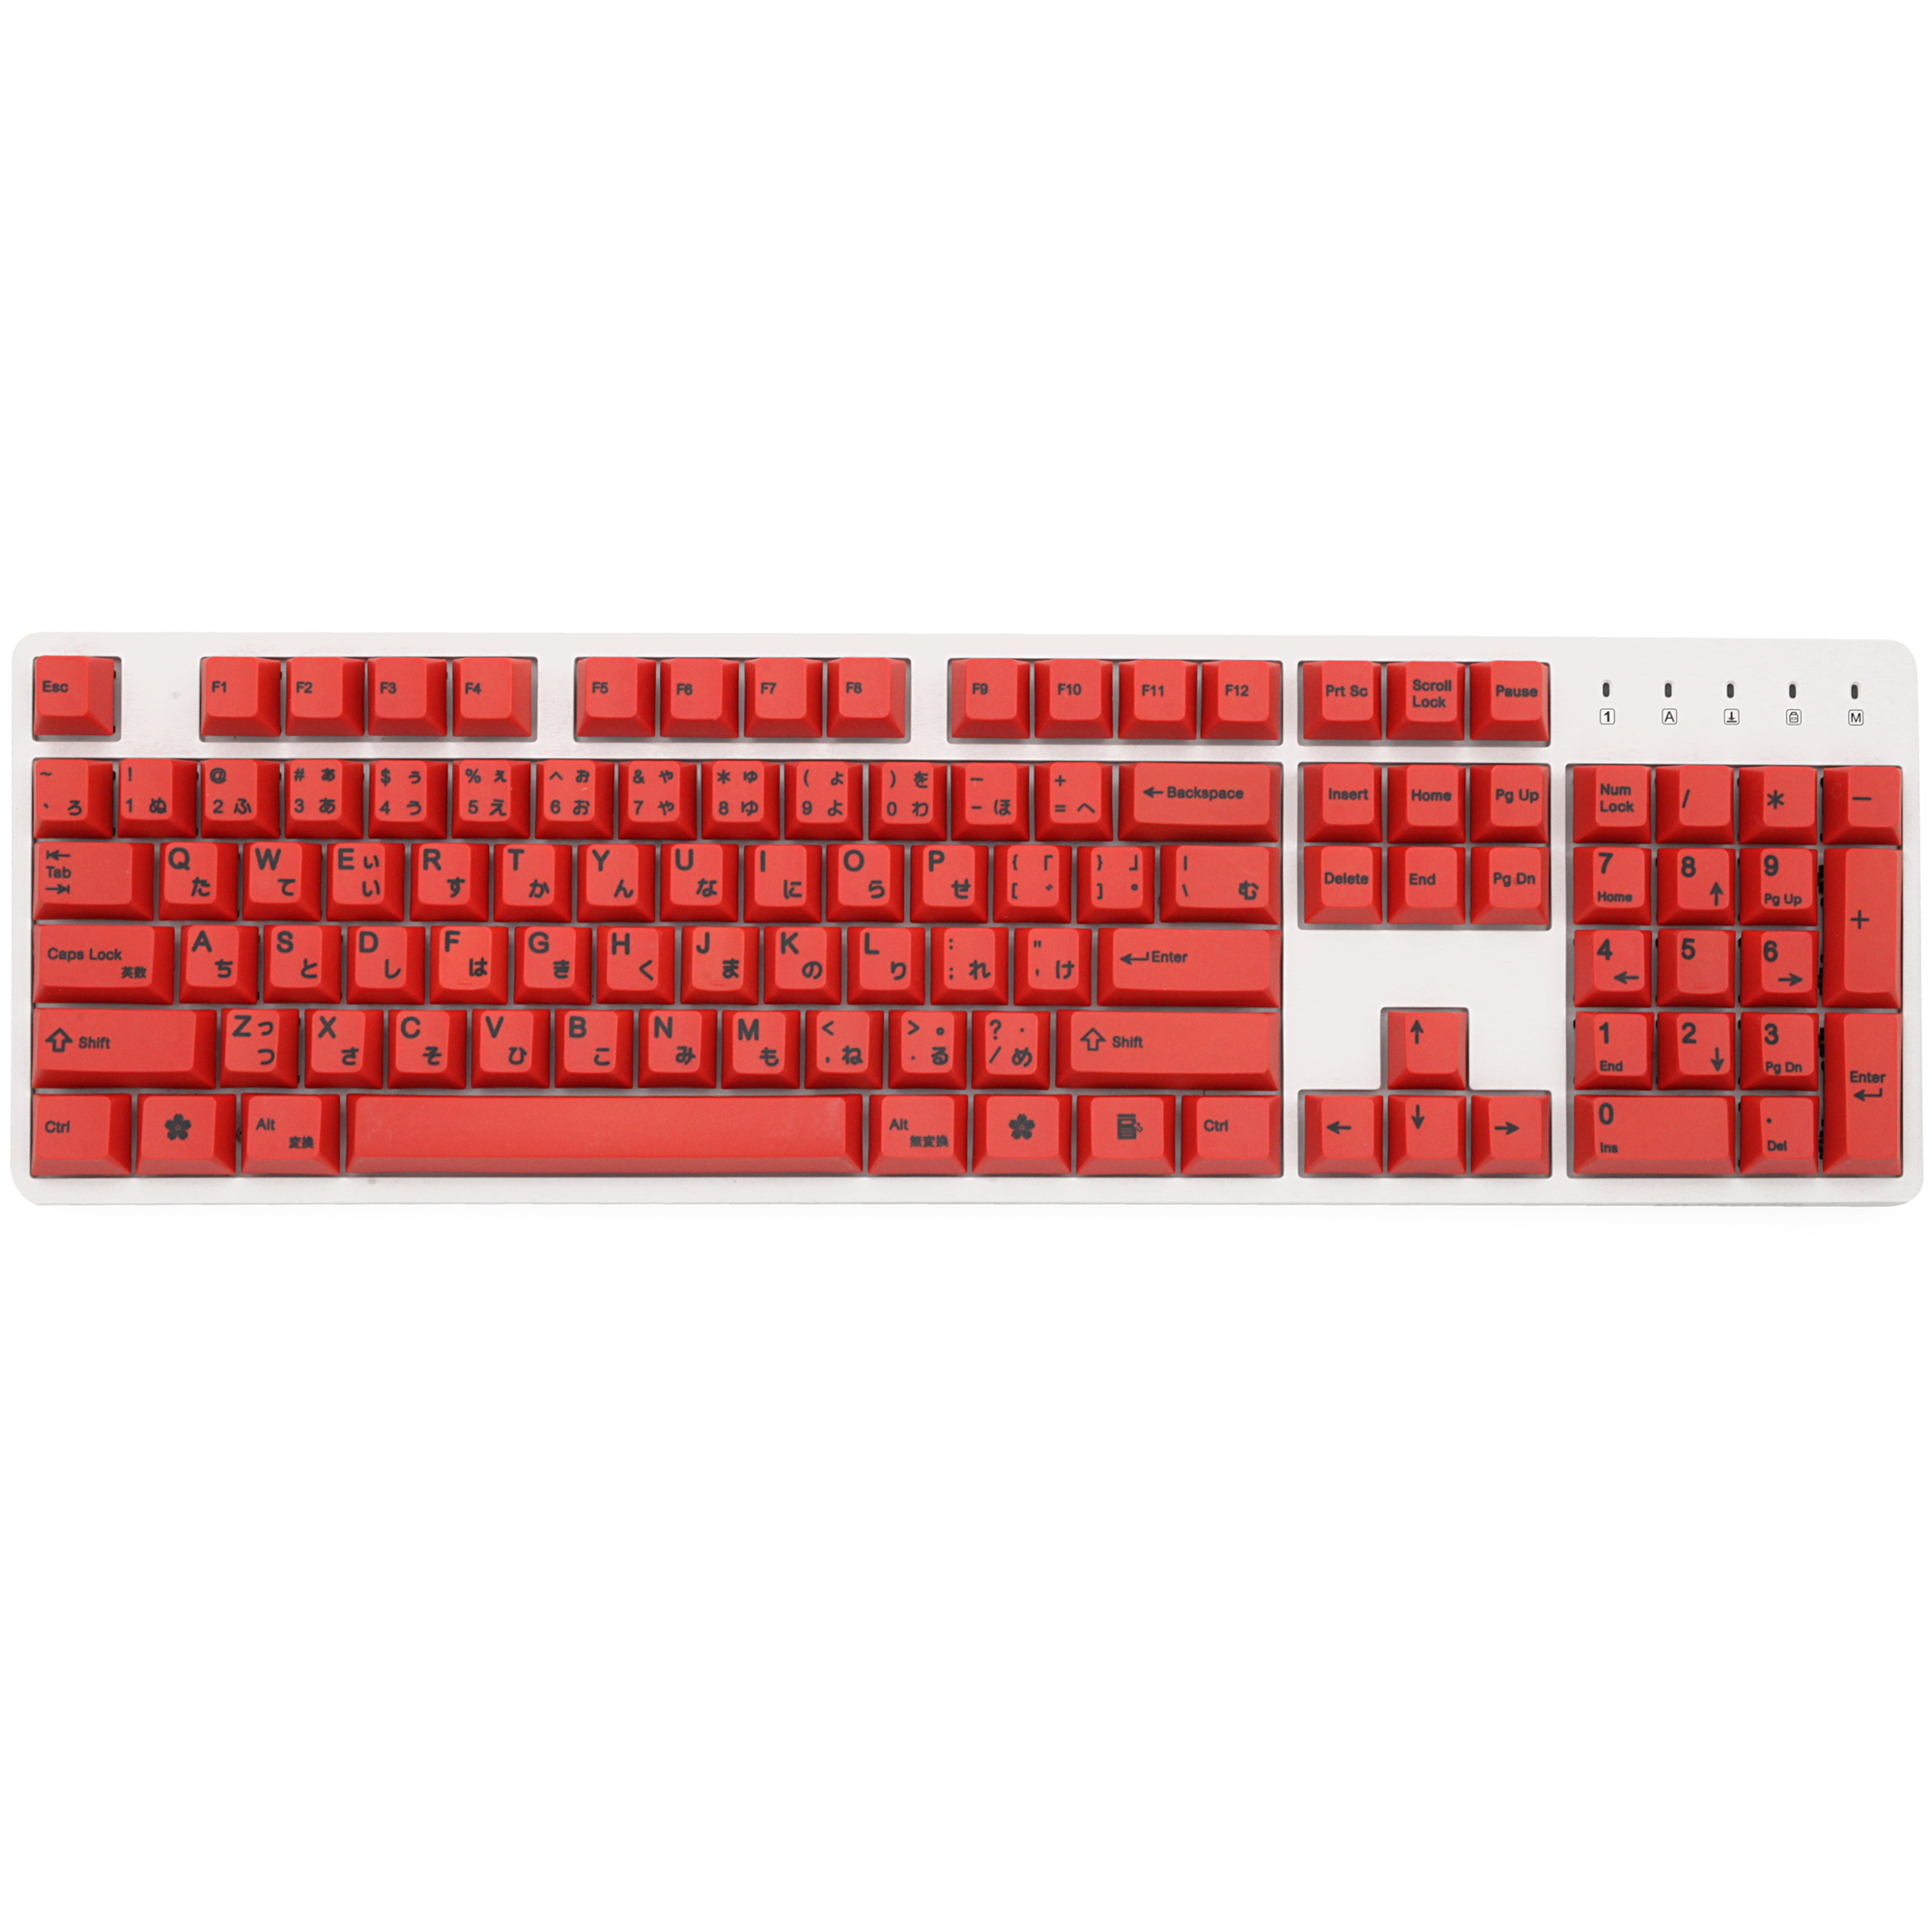 Red 139 Japanese root Japan black font language Cherry profile Dye Sub <font><b>Keycap</b></font> PBT for gh60 xd60 xd84 cospad <font><b>tada68</b></font> 87 104 image